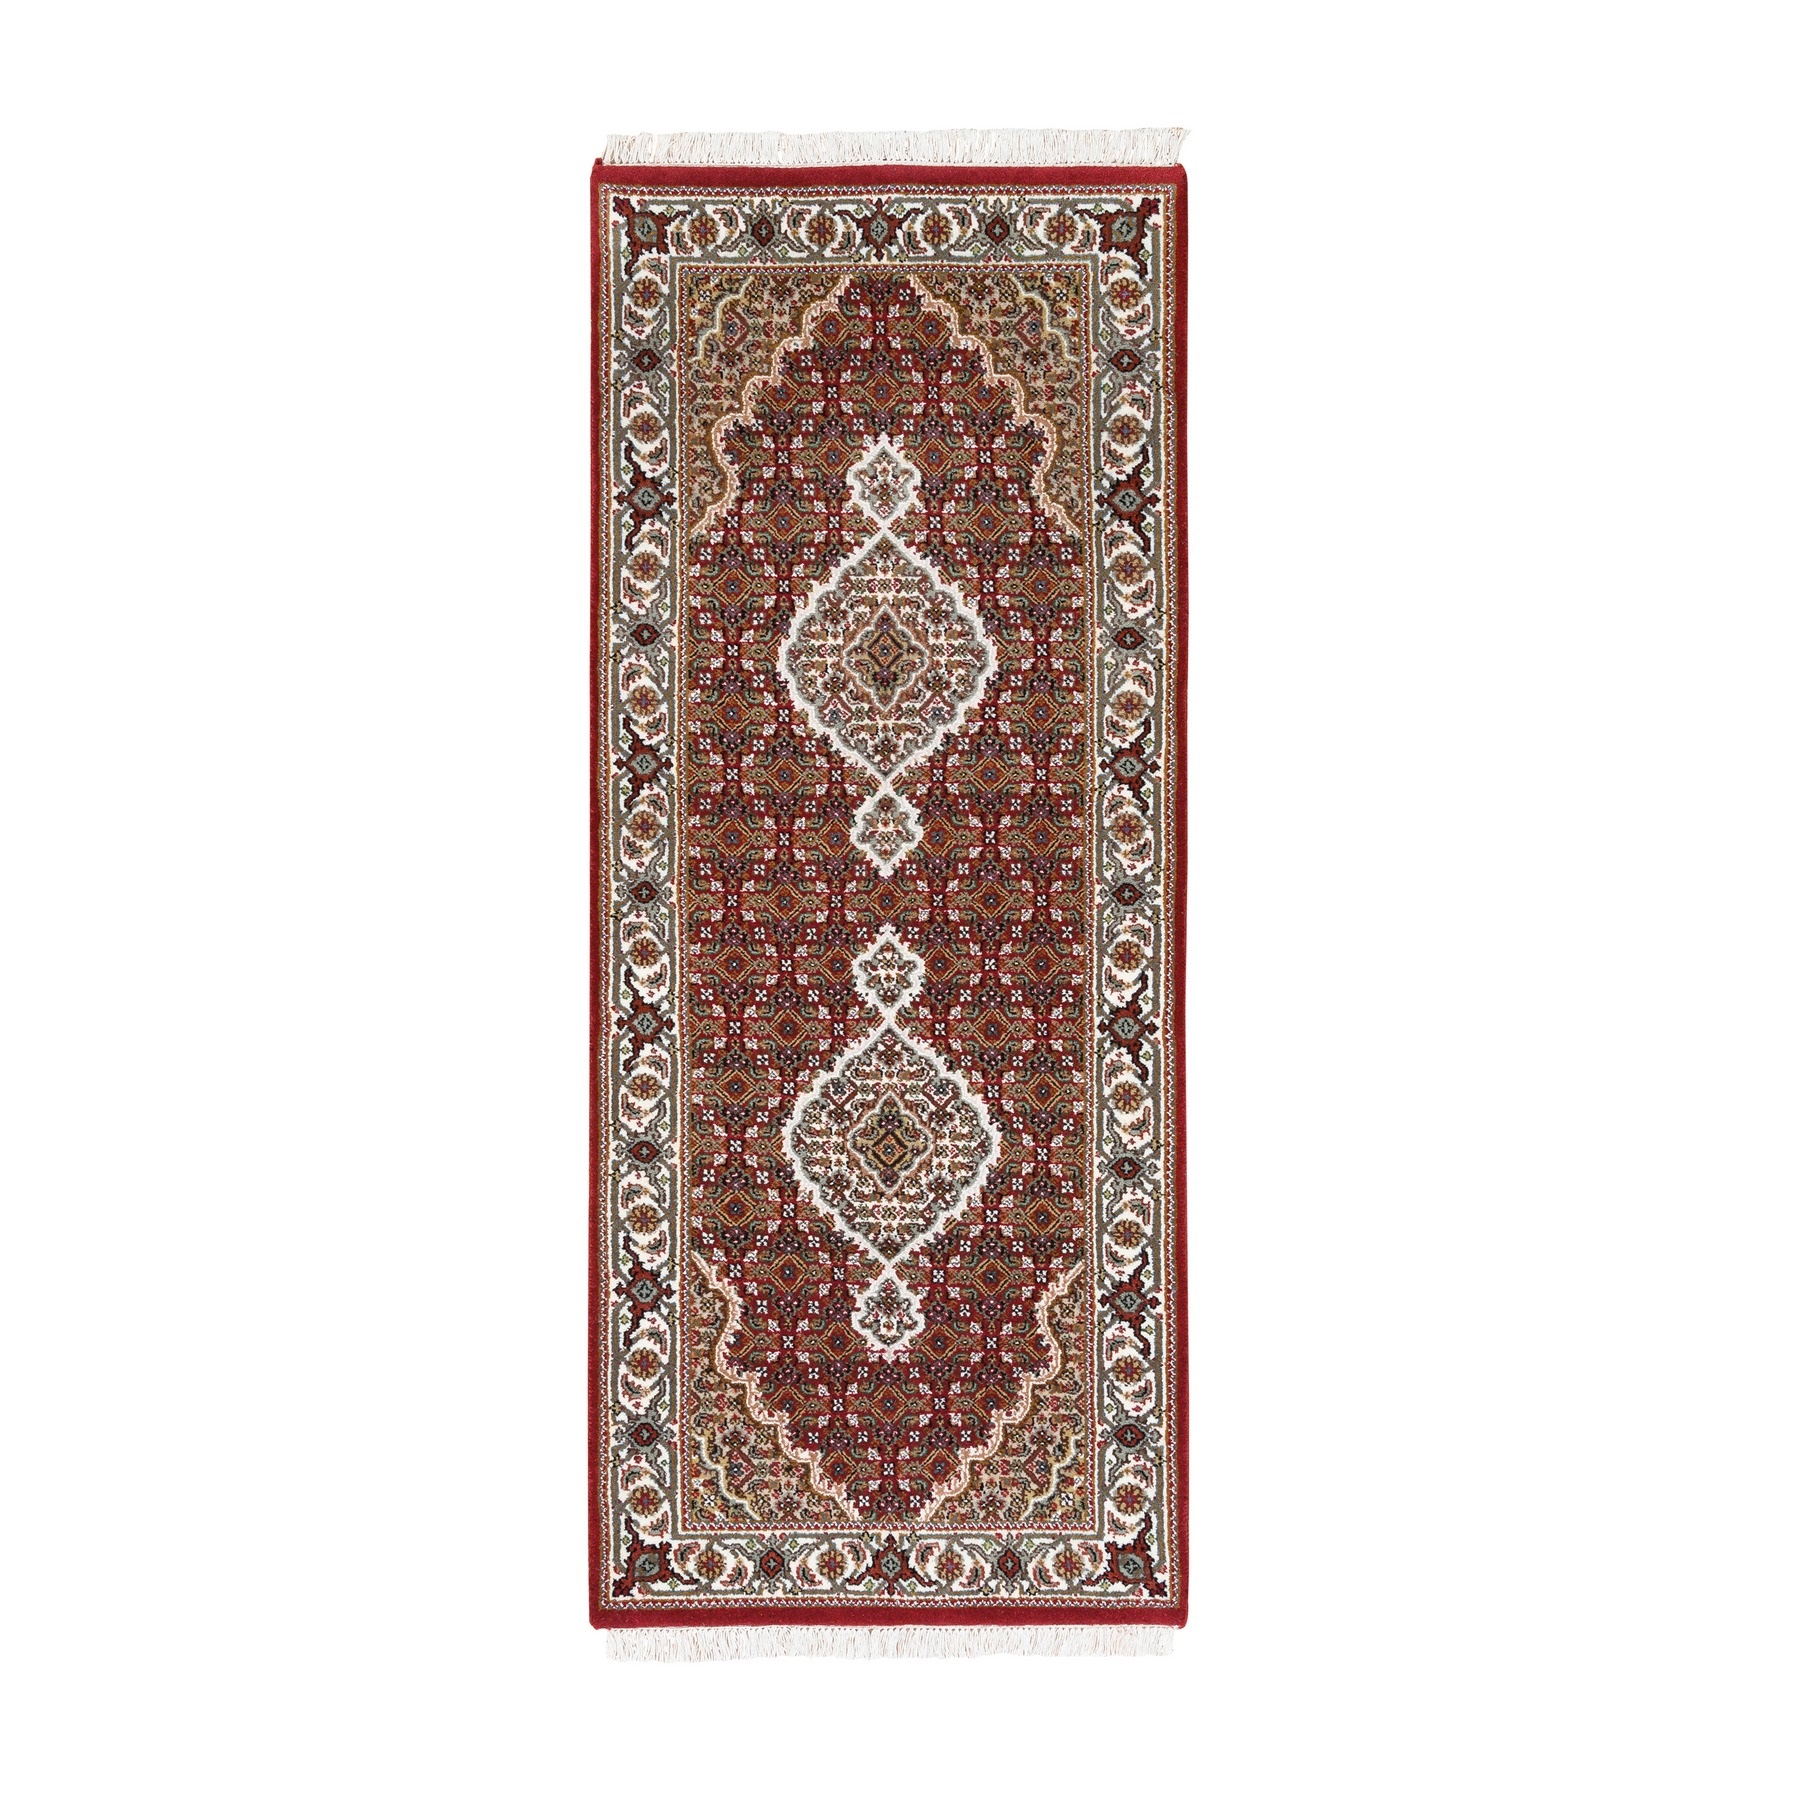 "2'7""x6'8"" Hand Woven Red Tabriz Mahi Fish Medallion Design Wool And Silk Oriental Runner Rug"